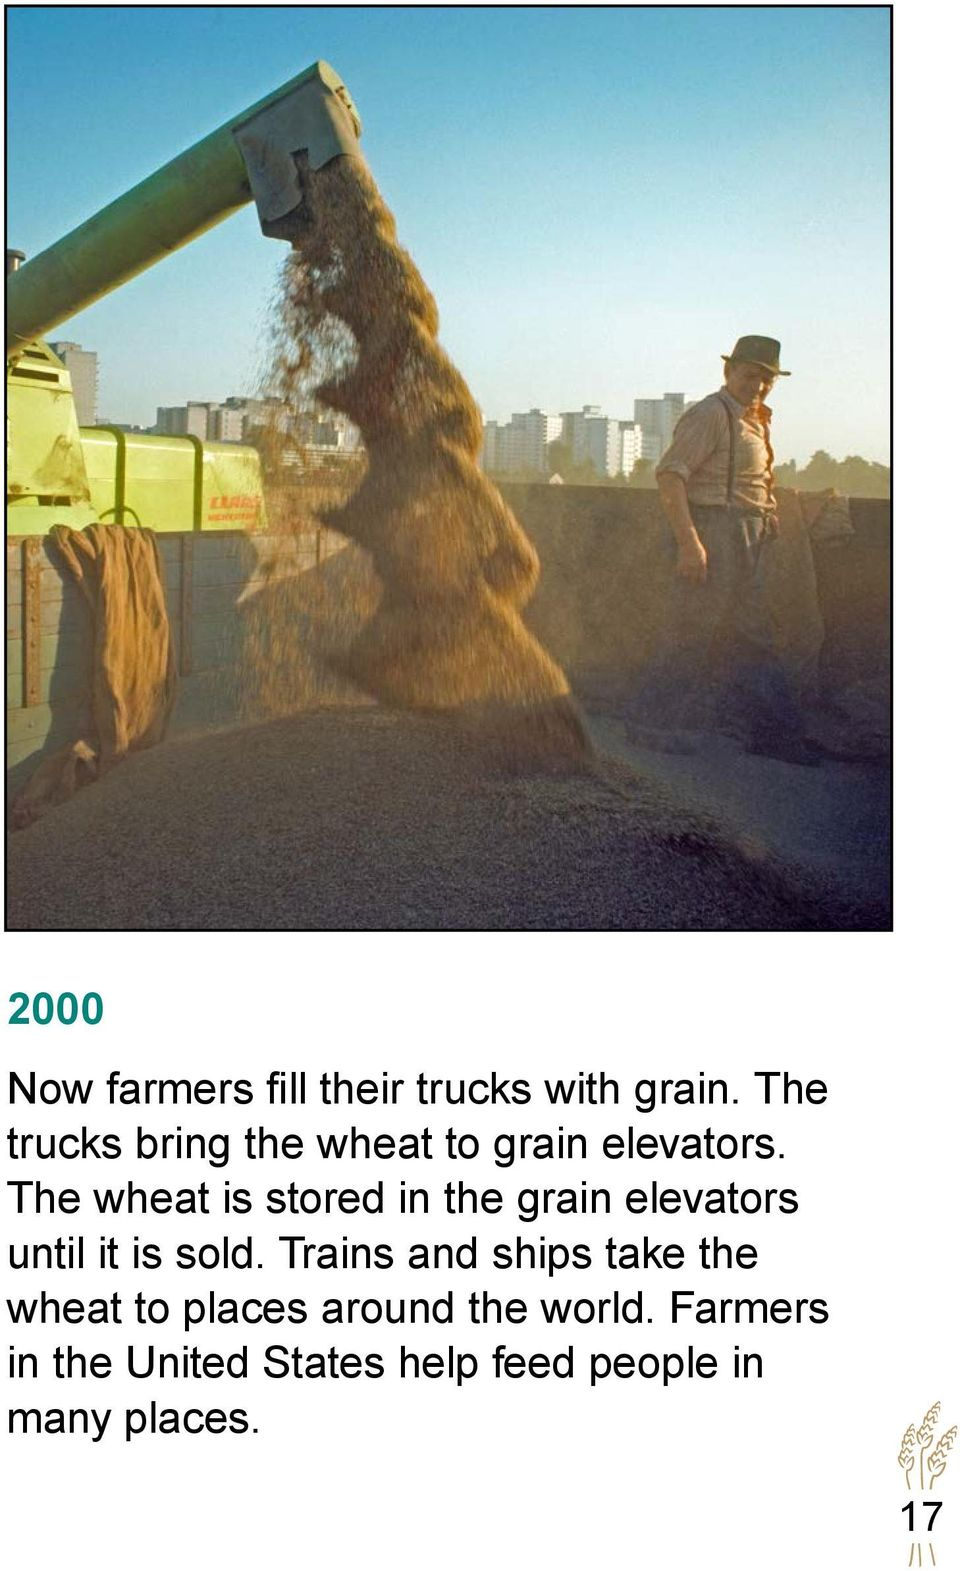 The wheat is stored in the grain elevators until it is sold.